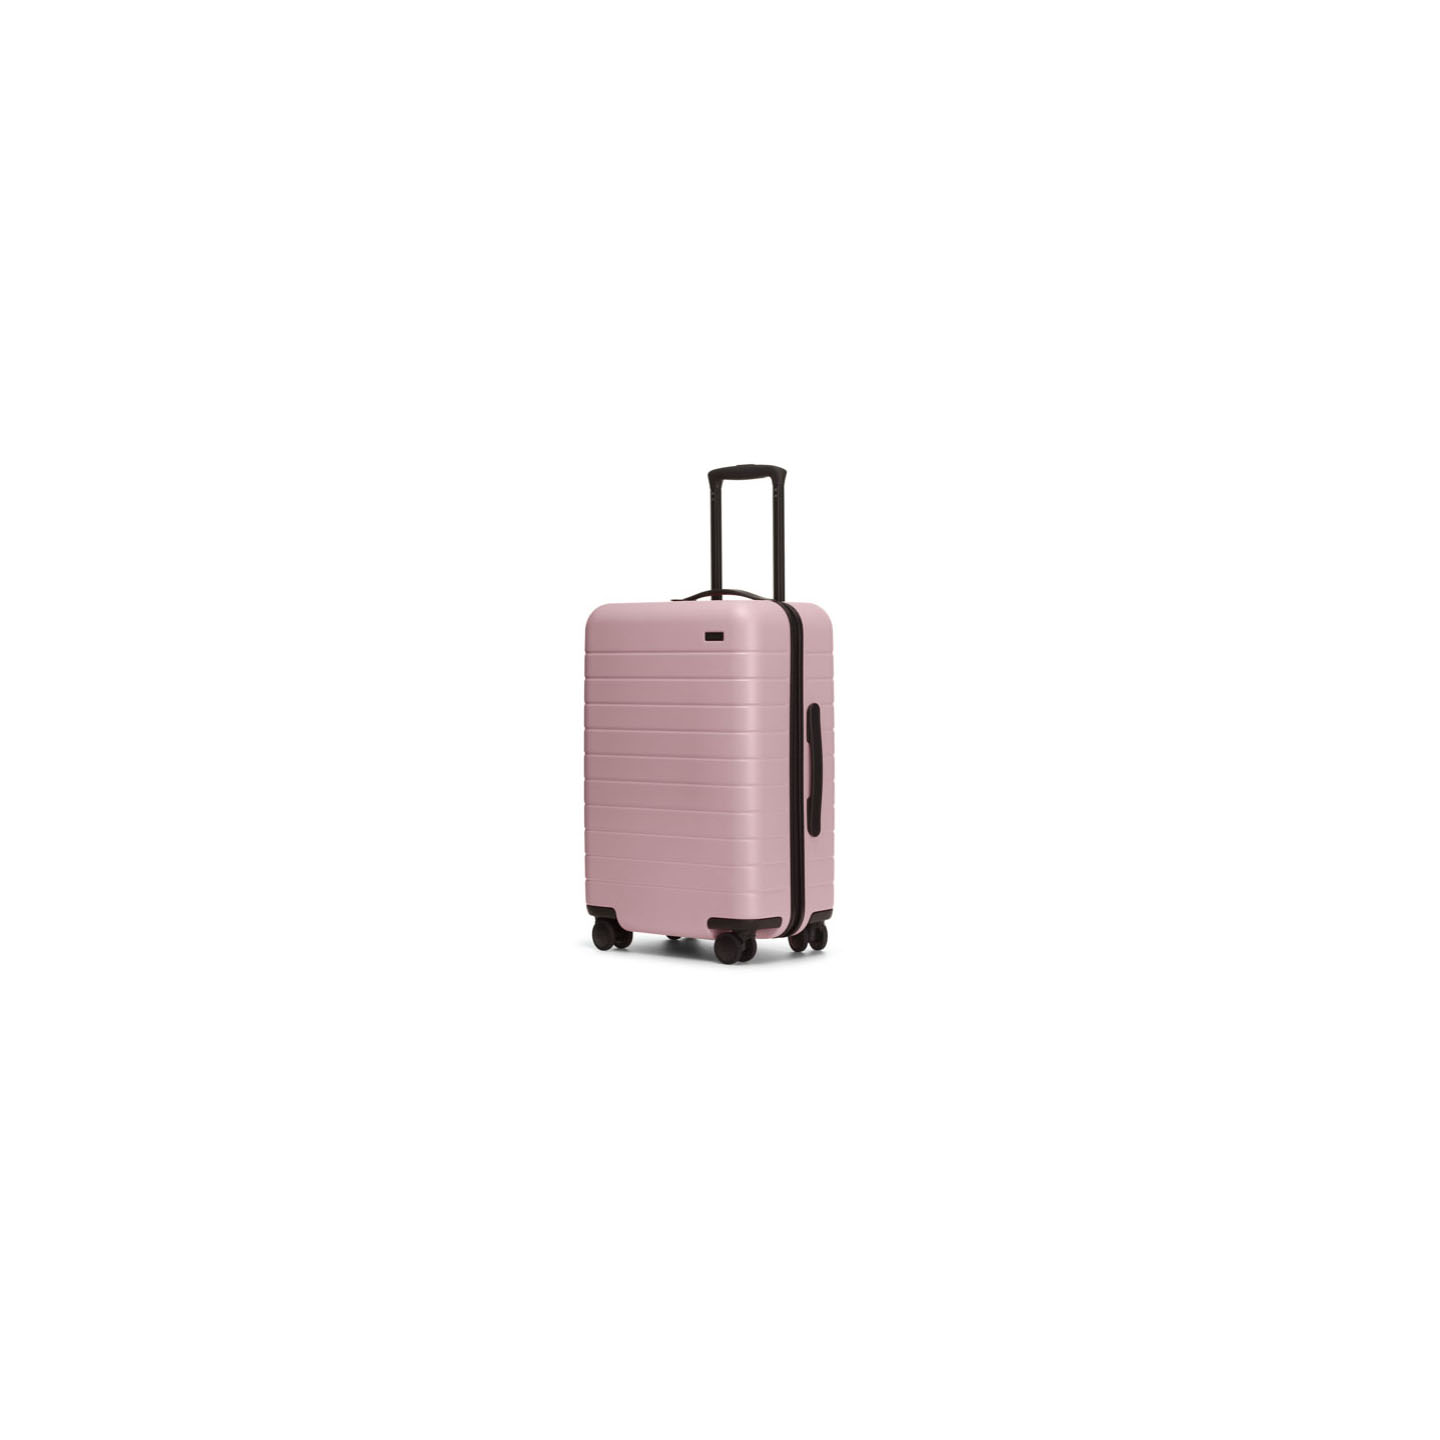 The Bigger Carry-On Away Suitcase